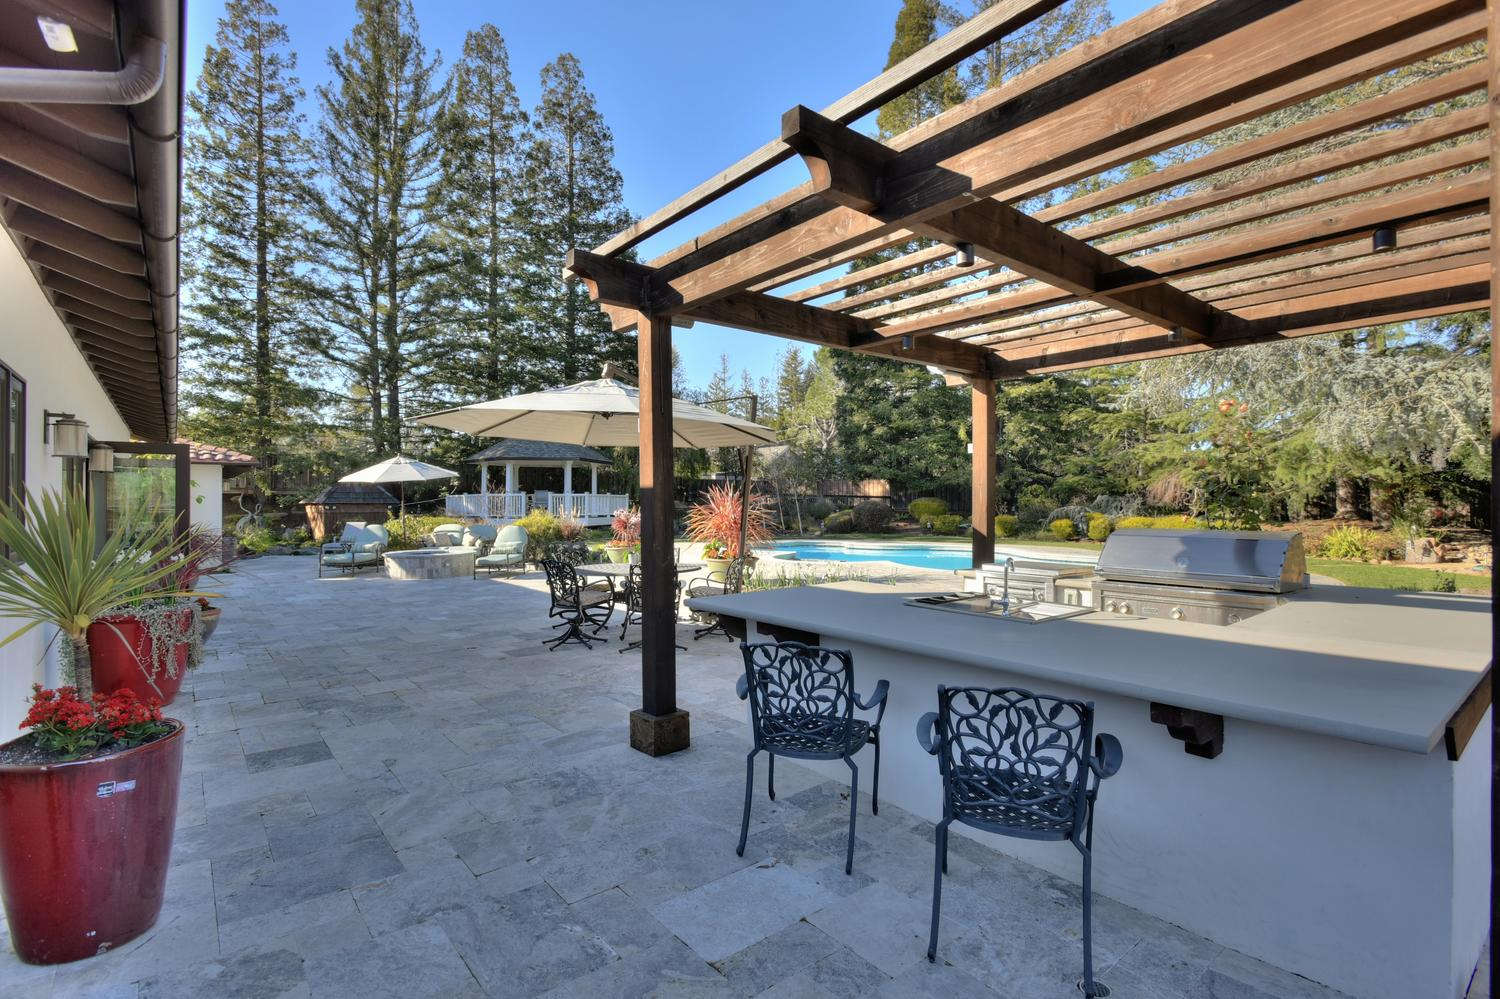 15977 Grandview Dr Monte-large-049-44-Back Patio and BBQ Area-1500x999-72dpi.jpg